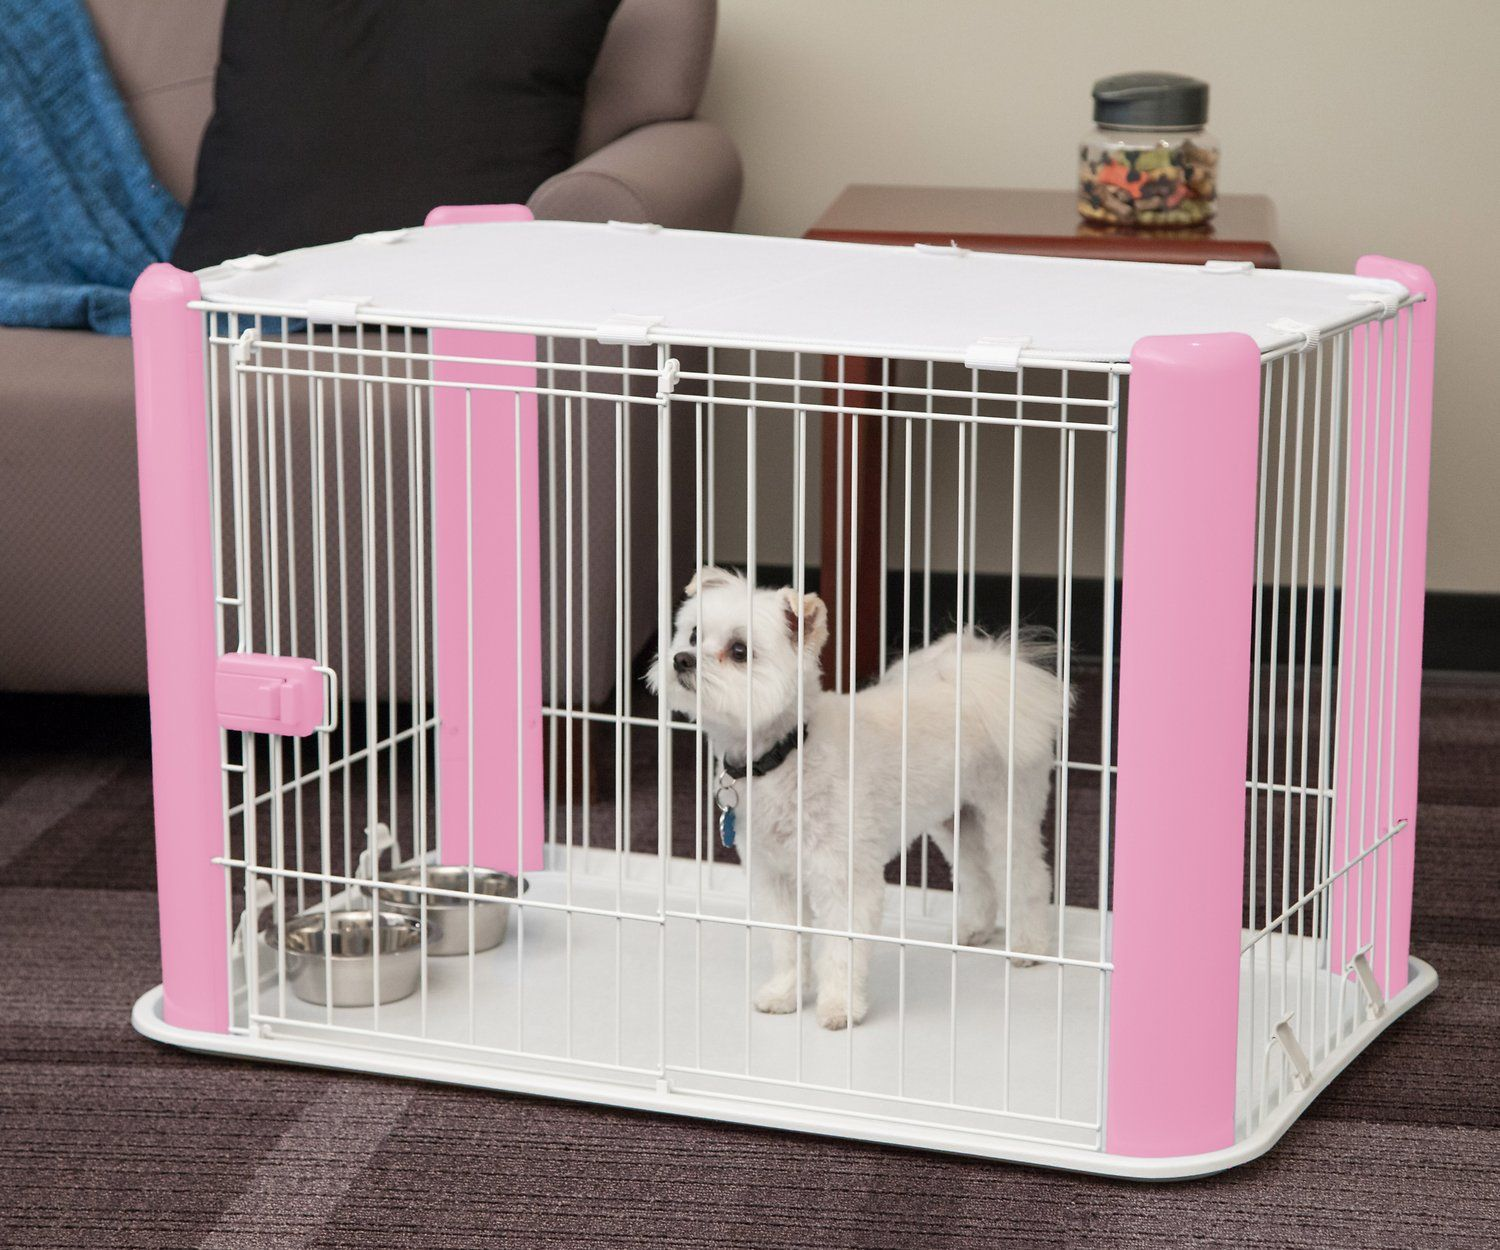 The Iris Pet Wire Play Pen With Mesh Roof Lets Your Dog Play Safely While You Get Things Done Around The House This Pen Fea Dog Playpen Pet Playpens Dog Crate